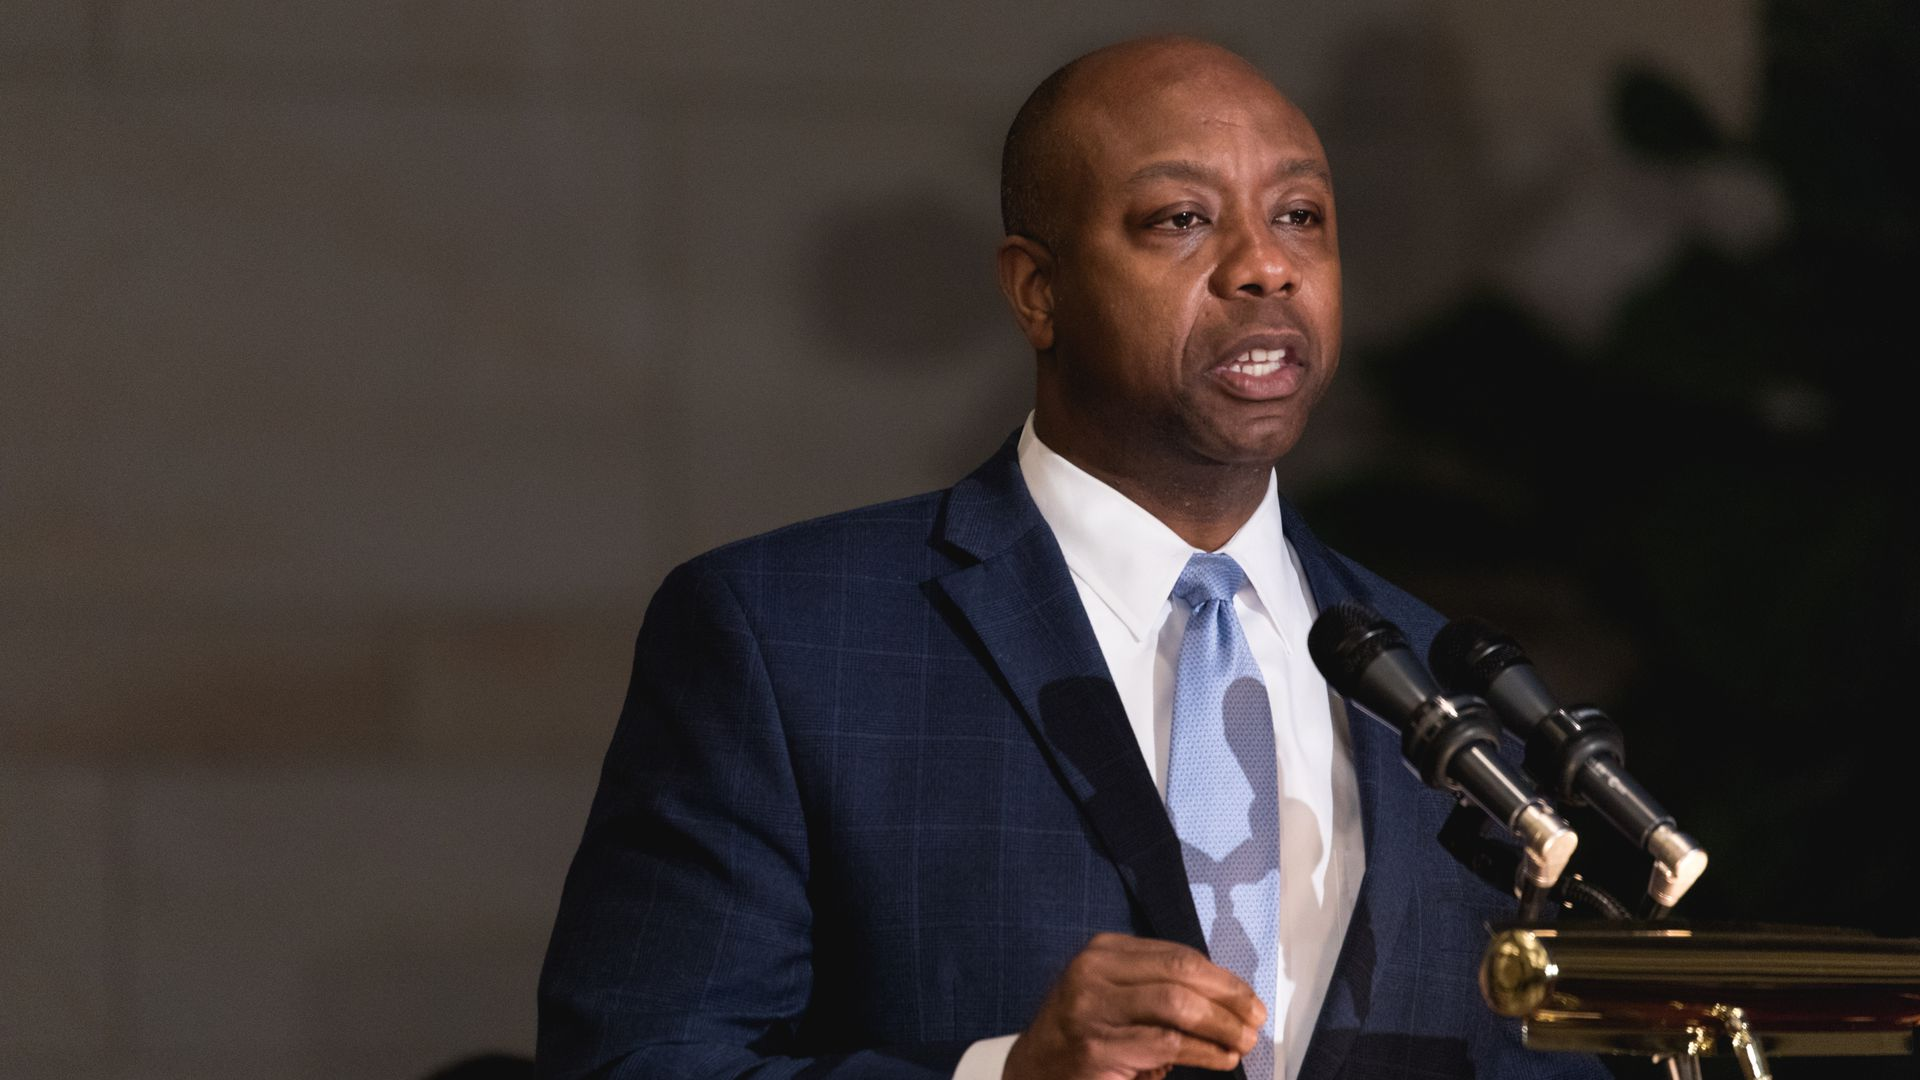 Senator Tim Scott speaks at a podium